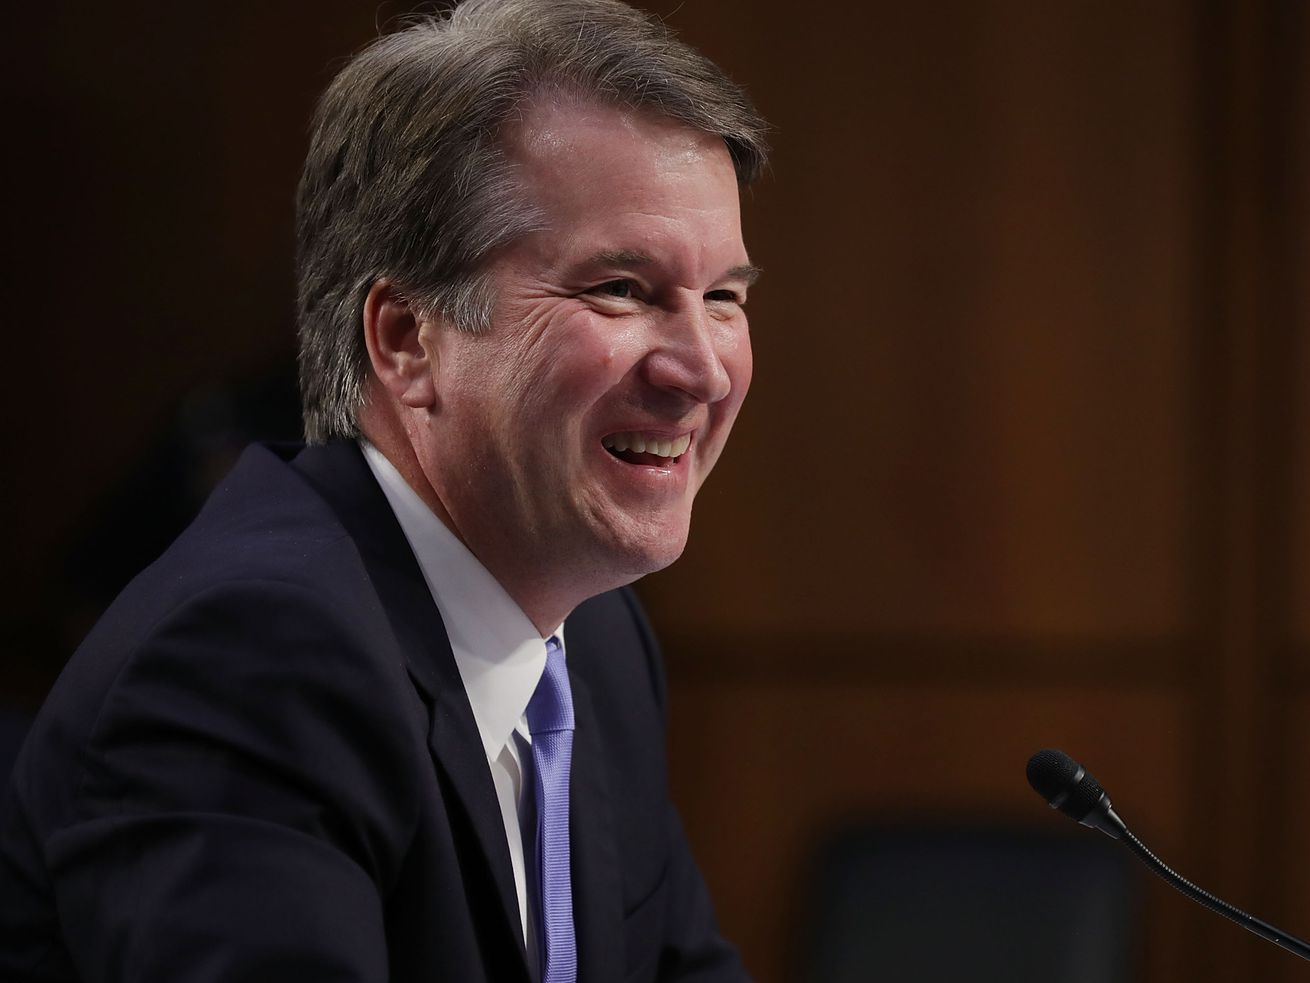 Brett Kavanaugh denies allegations of assaulting a girl in high school.